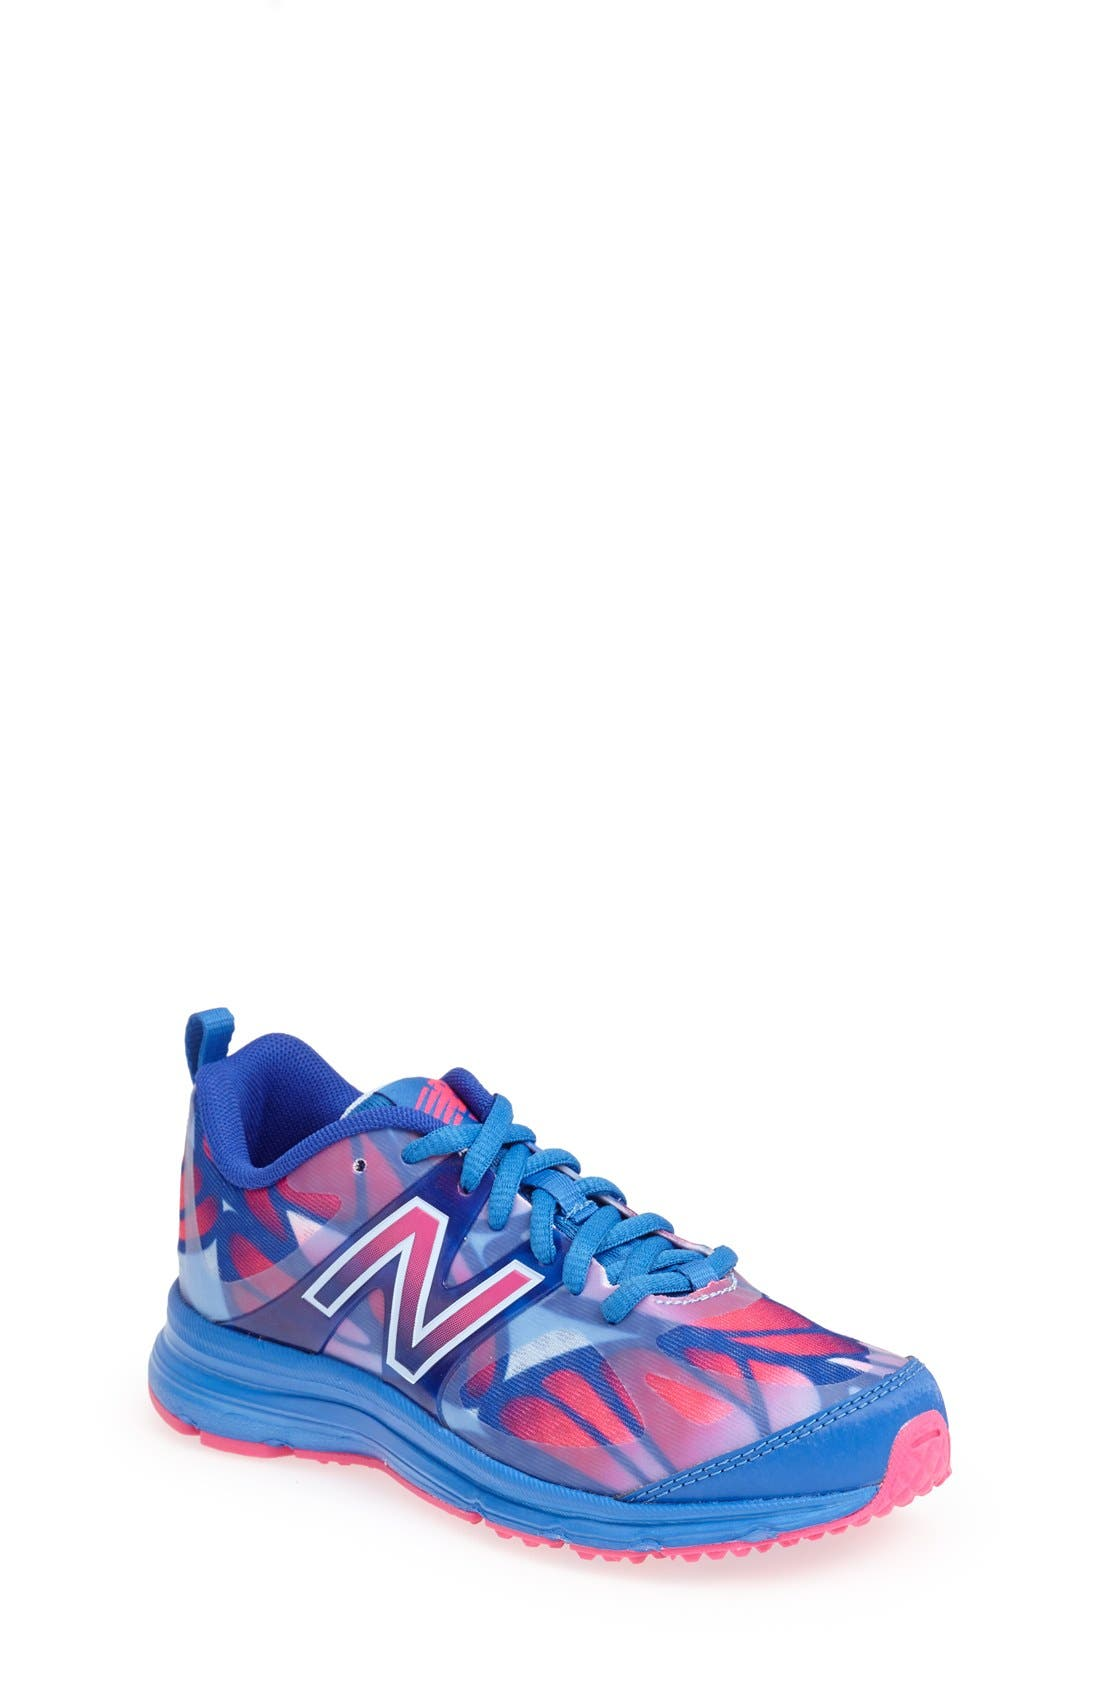 Main Image - New Balance 'Update 890 Beetles & Butterfly' Athletic Shoe (Toddler, Little Kid & Big Kid)